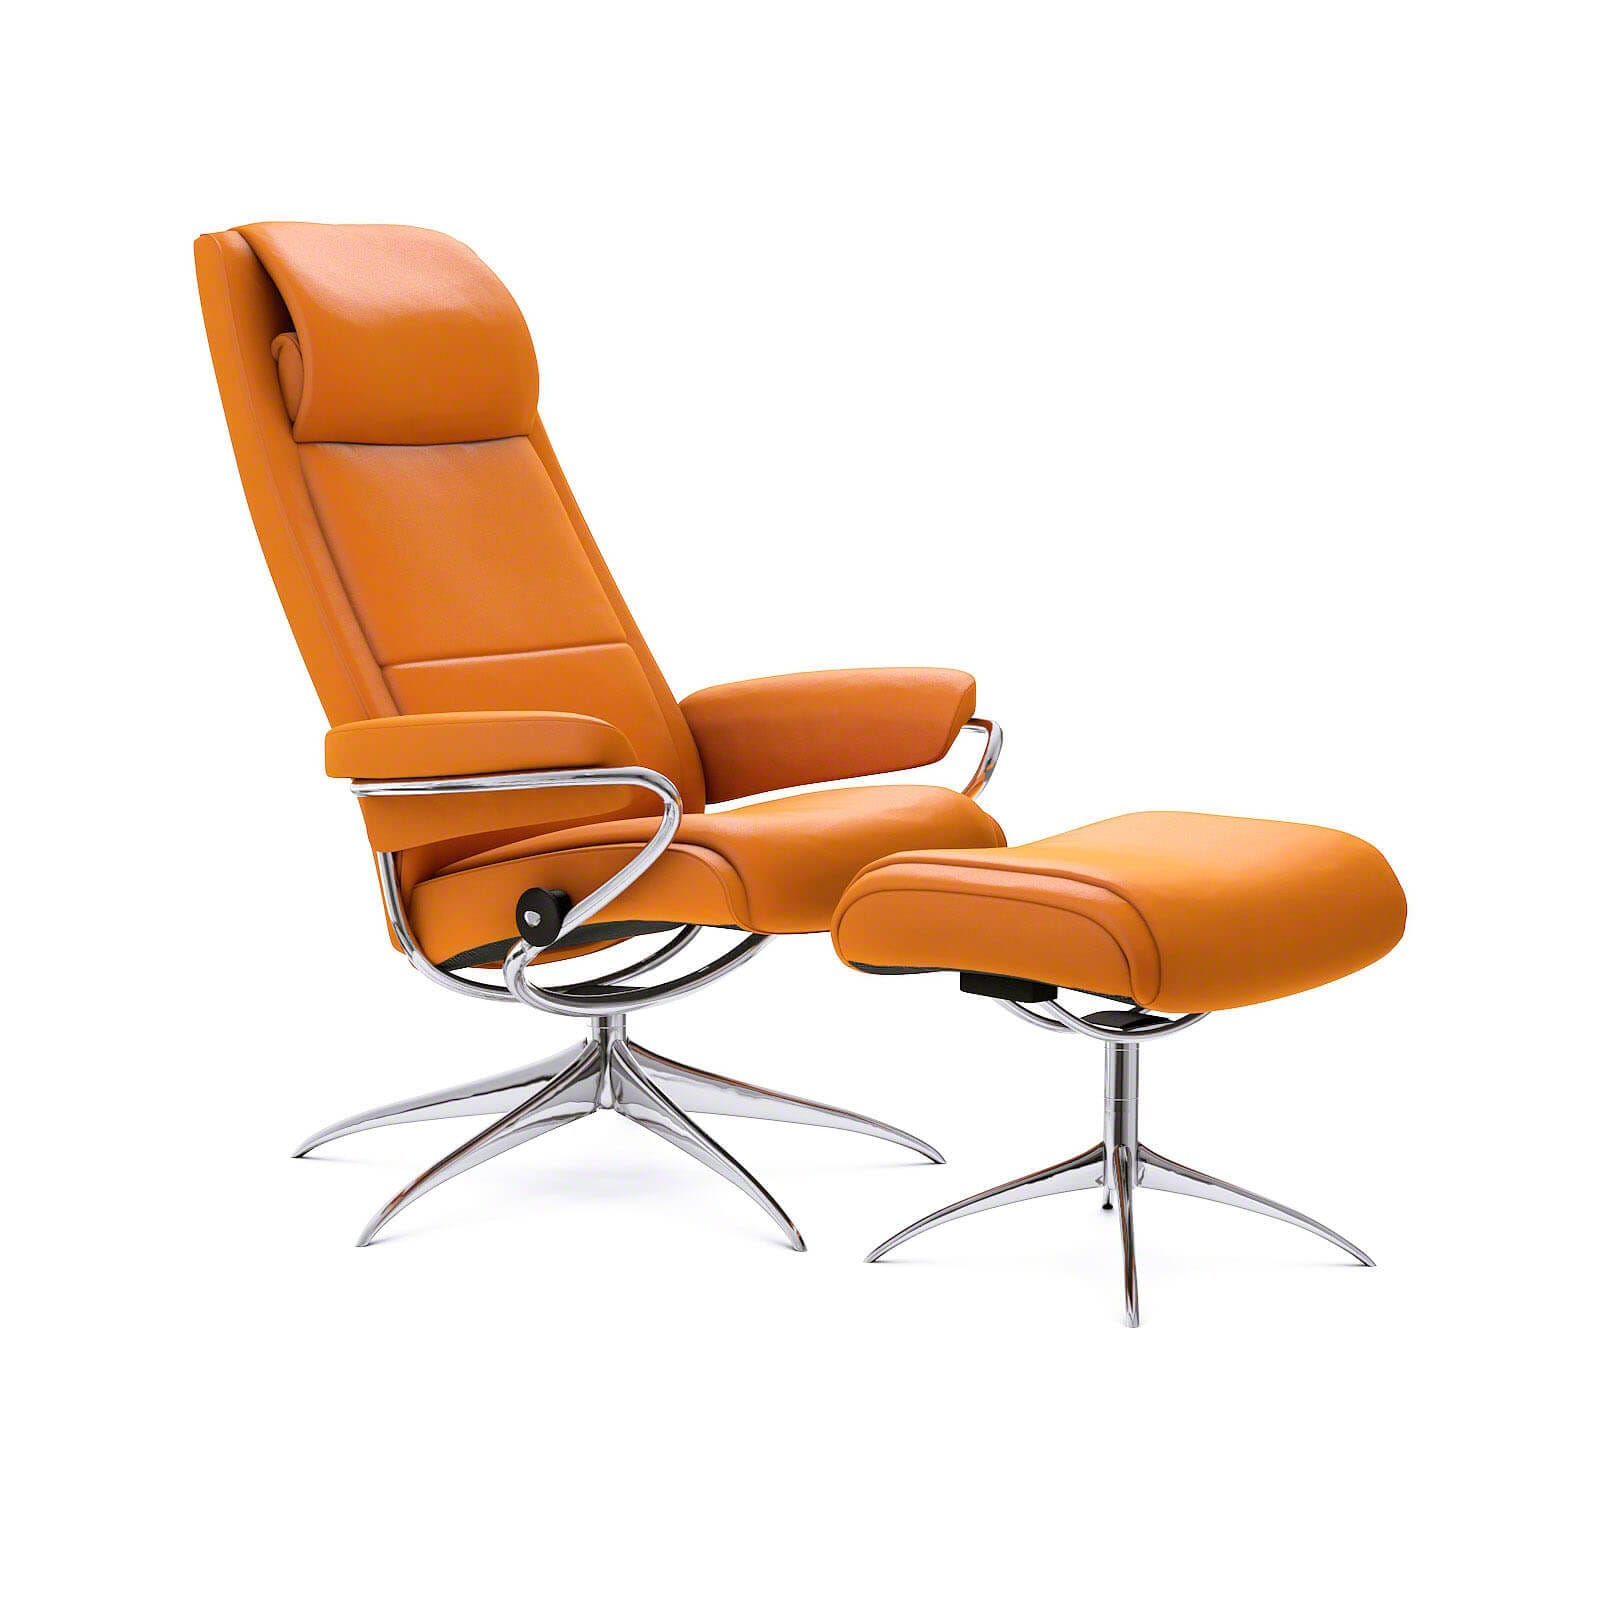 Stressless Paris Relaxsessel Paloma Clementine Hoher Lehne